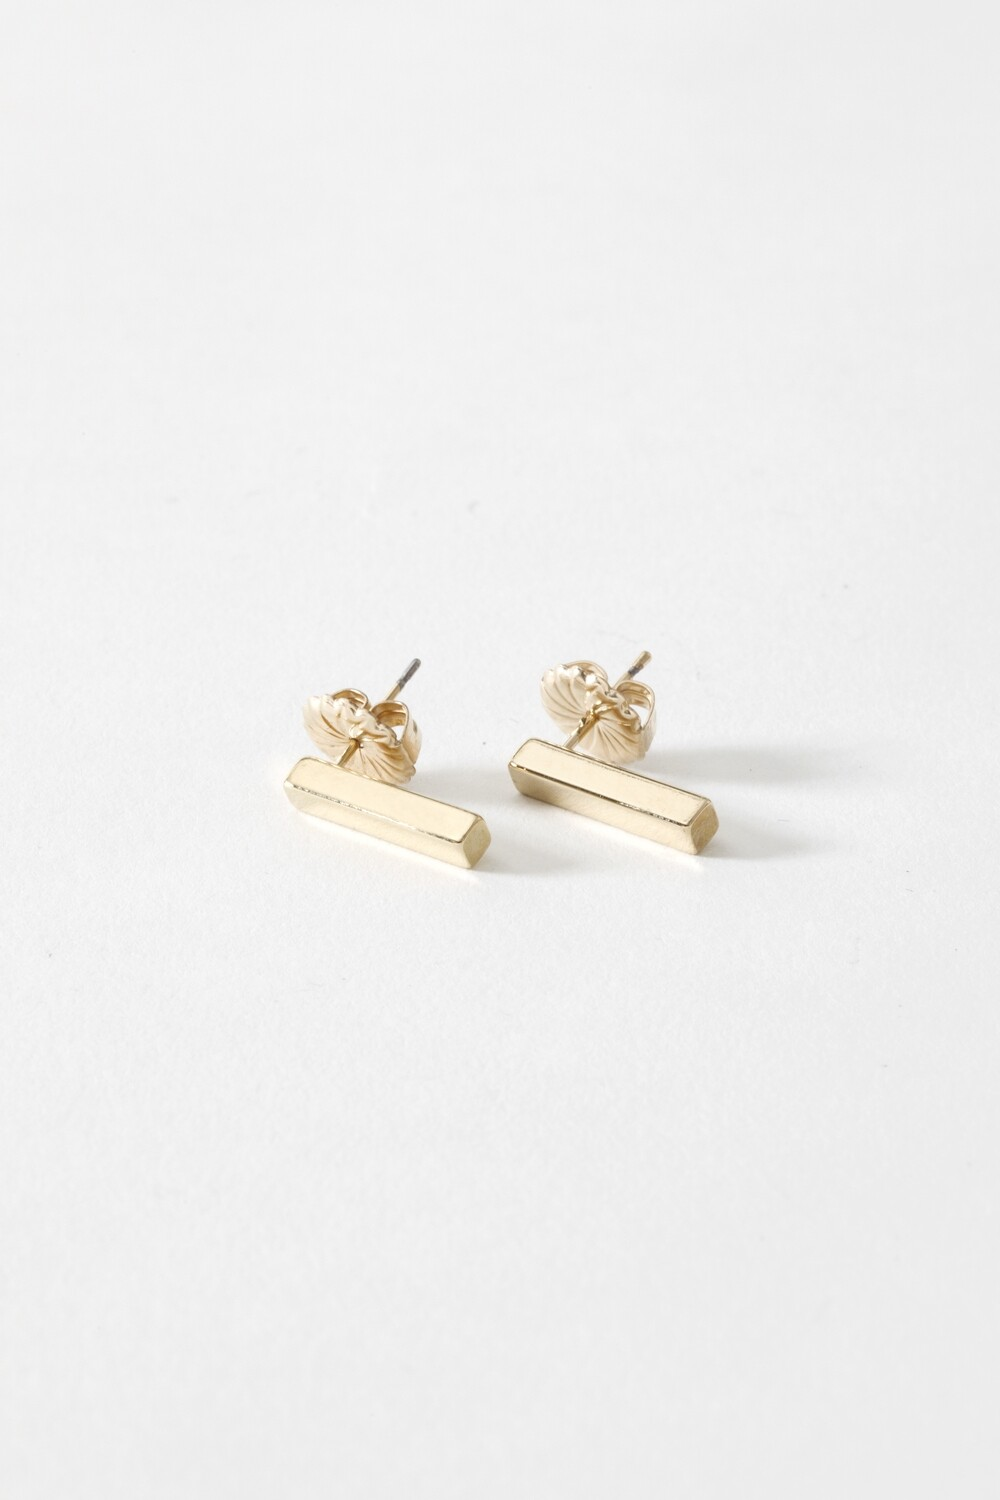 SecondDaughter Gold Vert. Bar Earring - Small